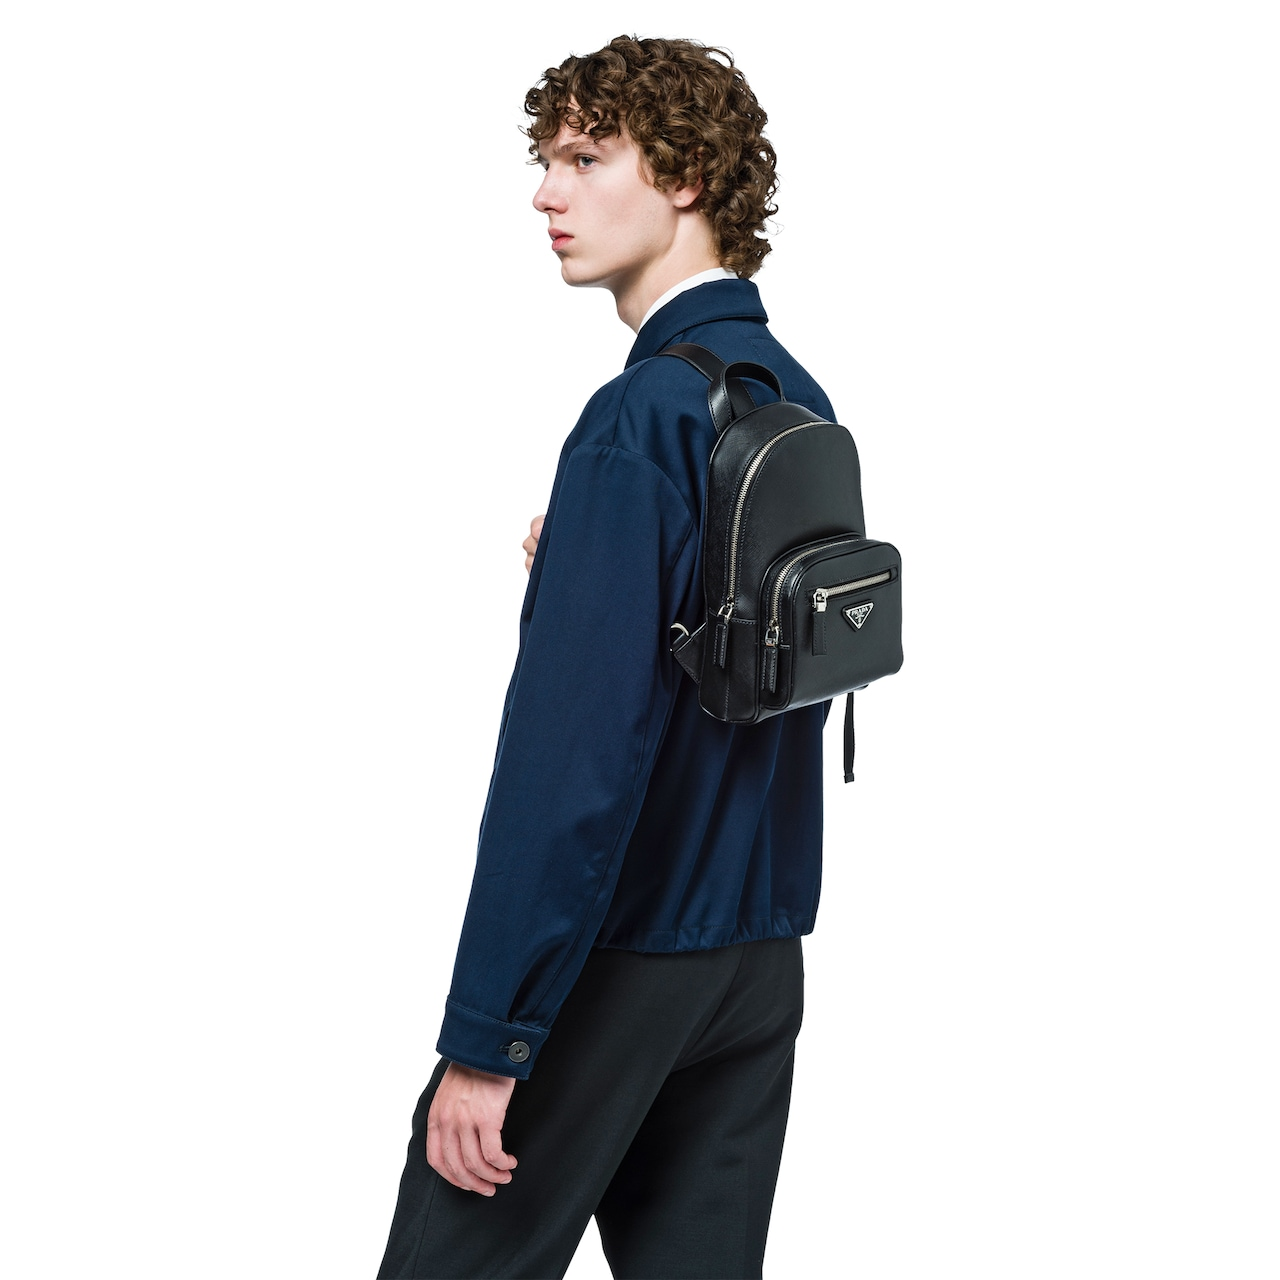 Saffiano one shoulder backpack